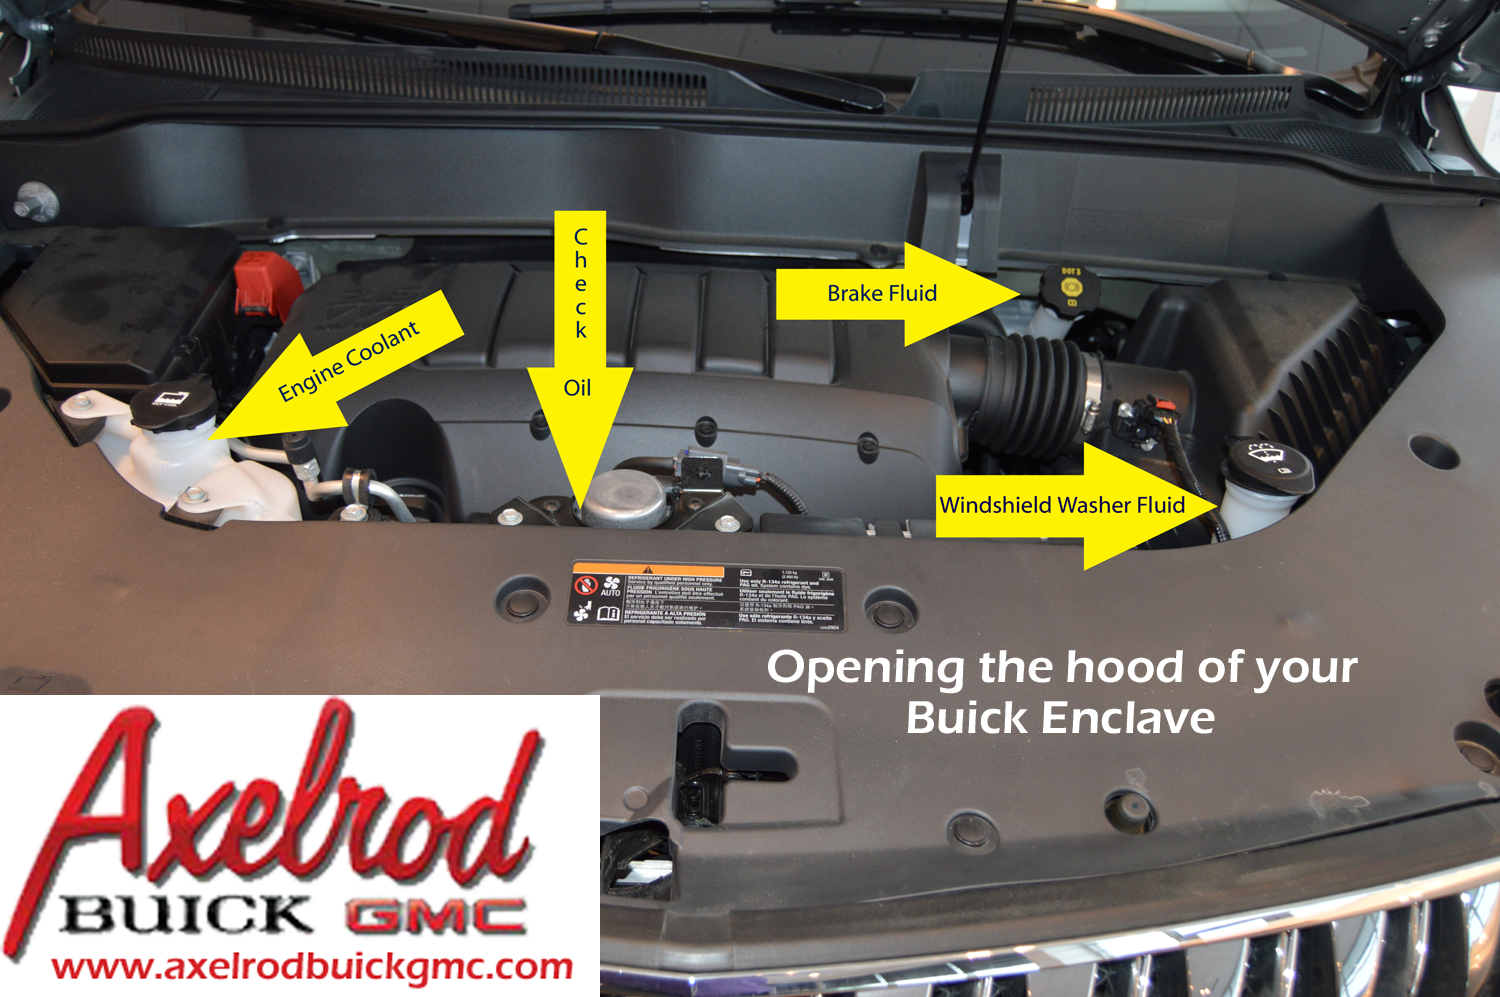 finding the hood latch on your buick enclave ask axelrod buick gmc in cleveland [ 1500 x 997 Pixel ]